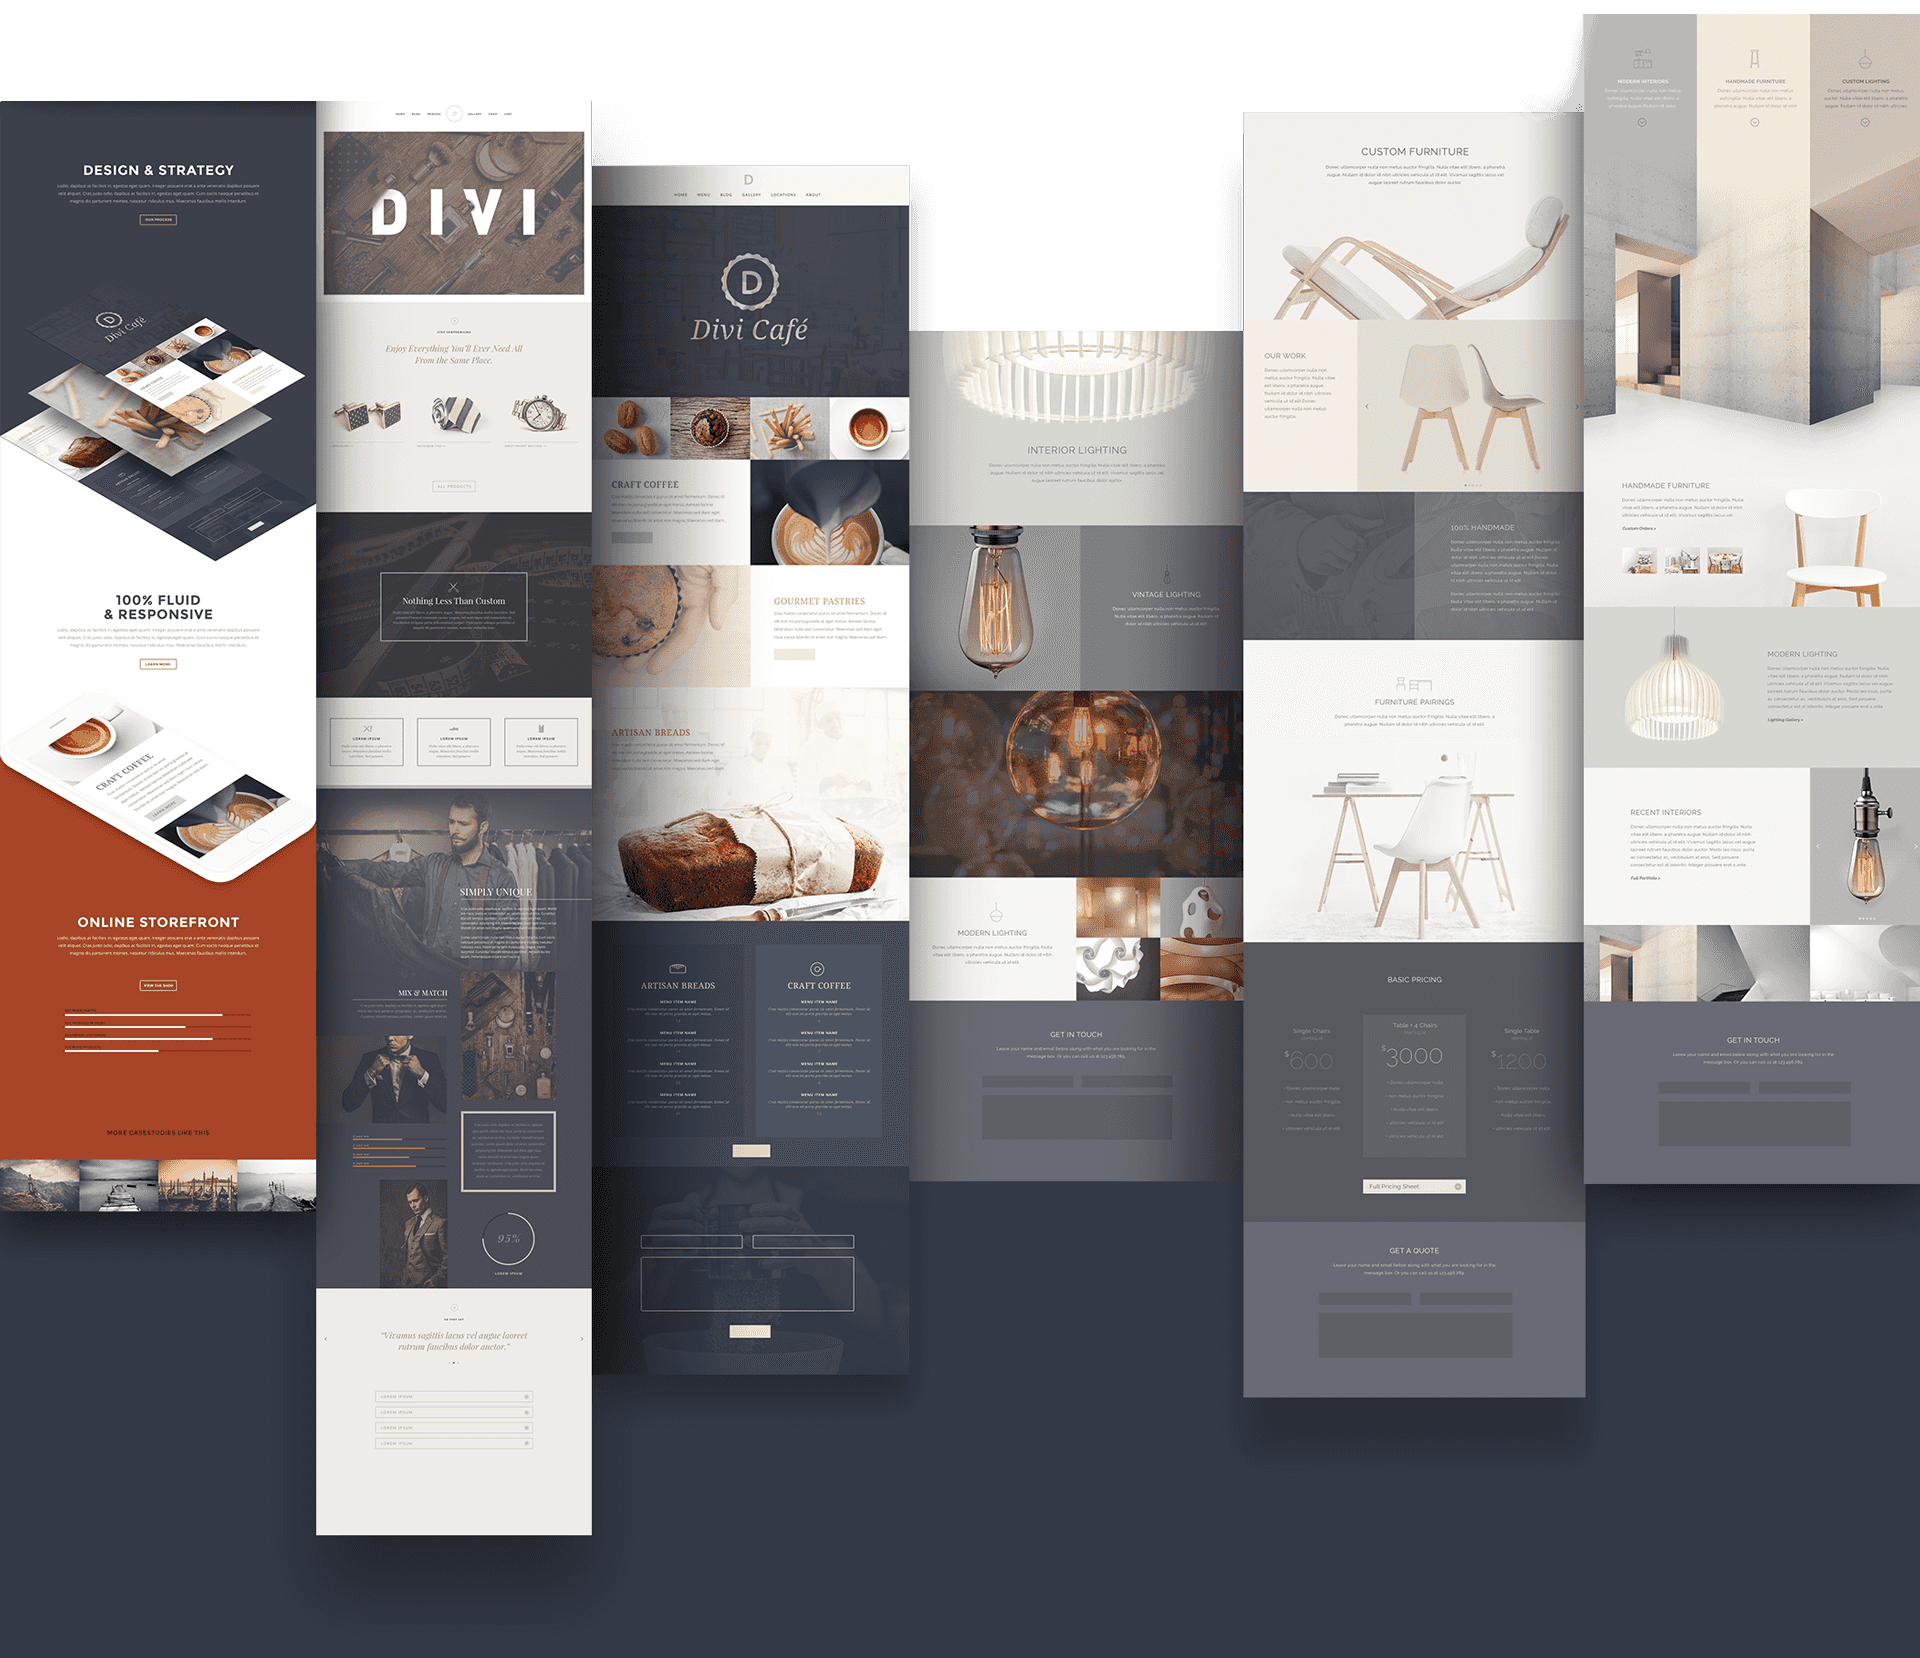 Web Design Themes - Elegant Themes Divi WordPress Theme